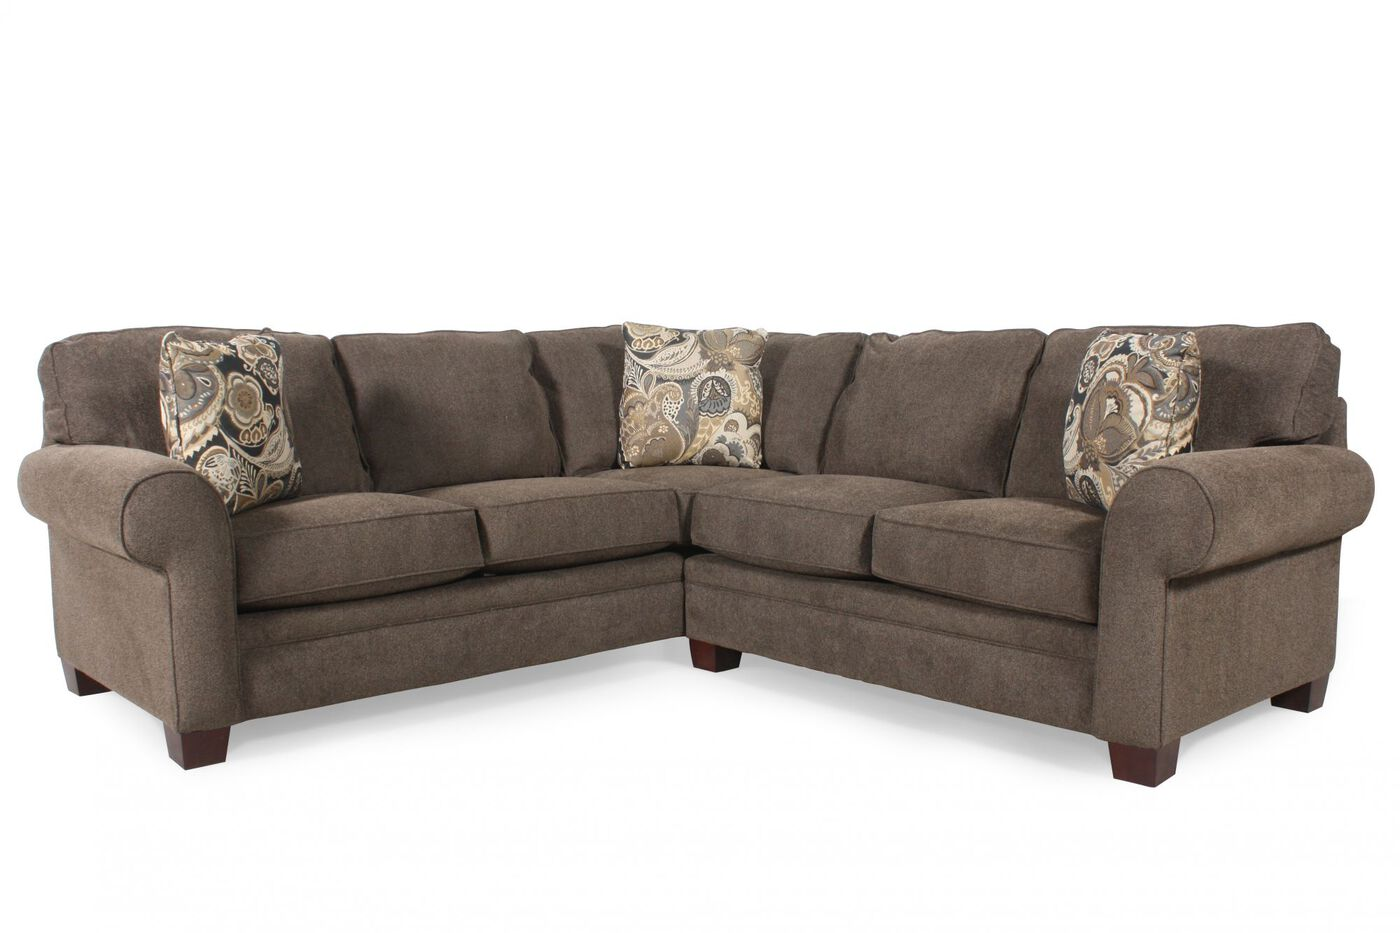 Dining Room Furniture Deals Broyhill Choices Two Piece Sectional Mathis Brothers